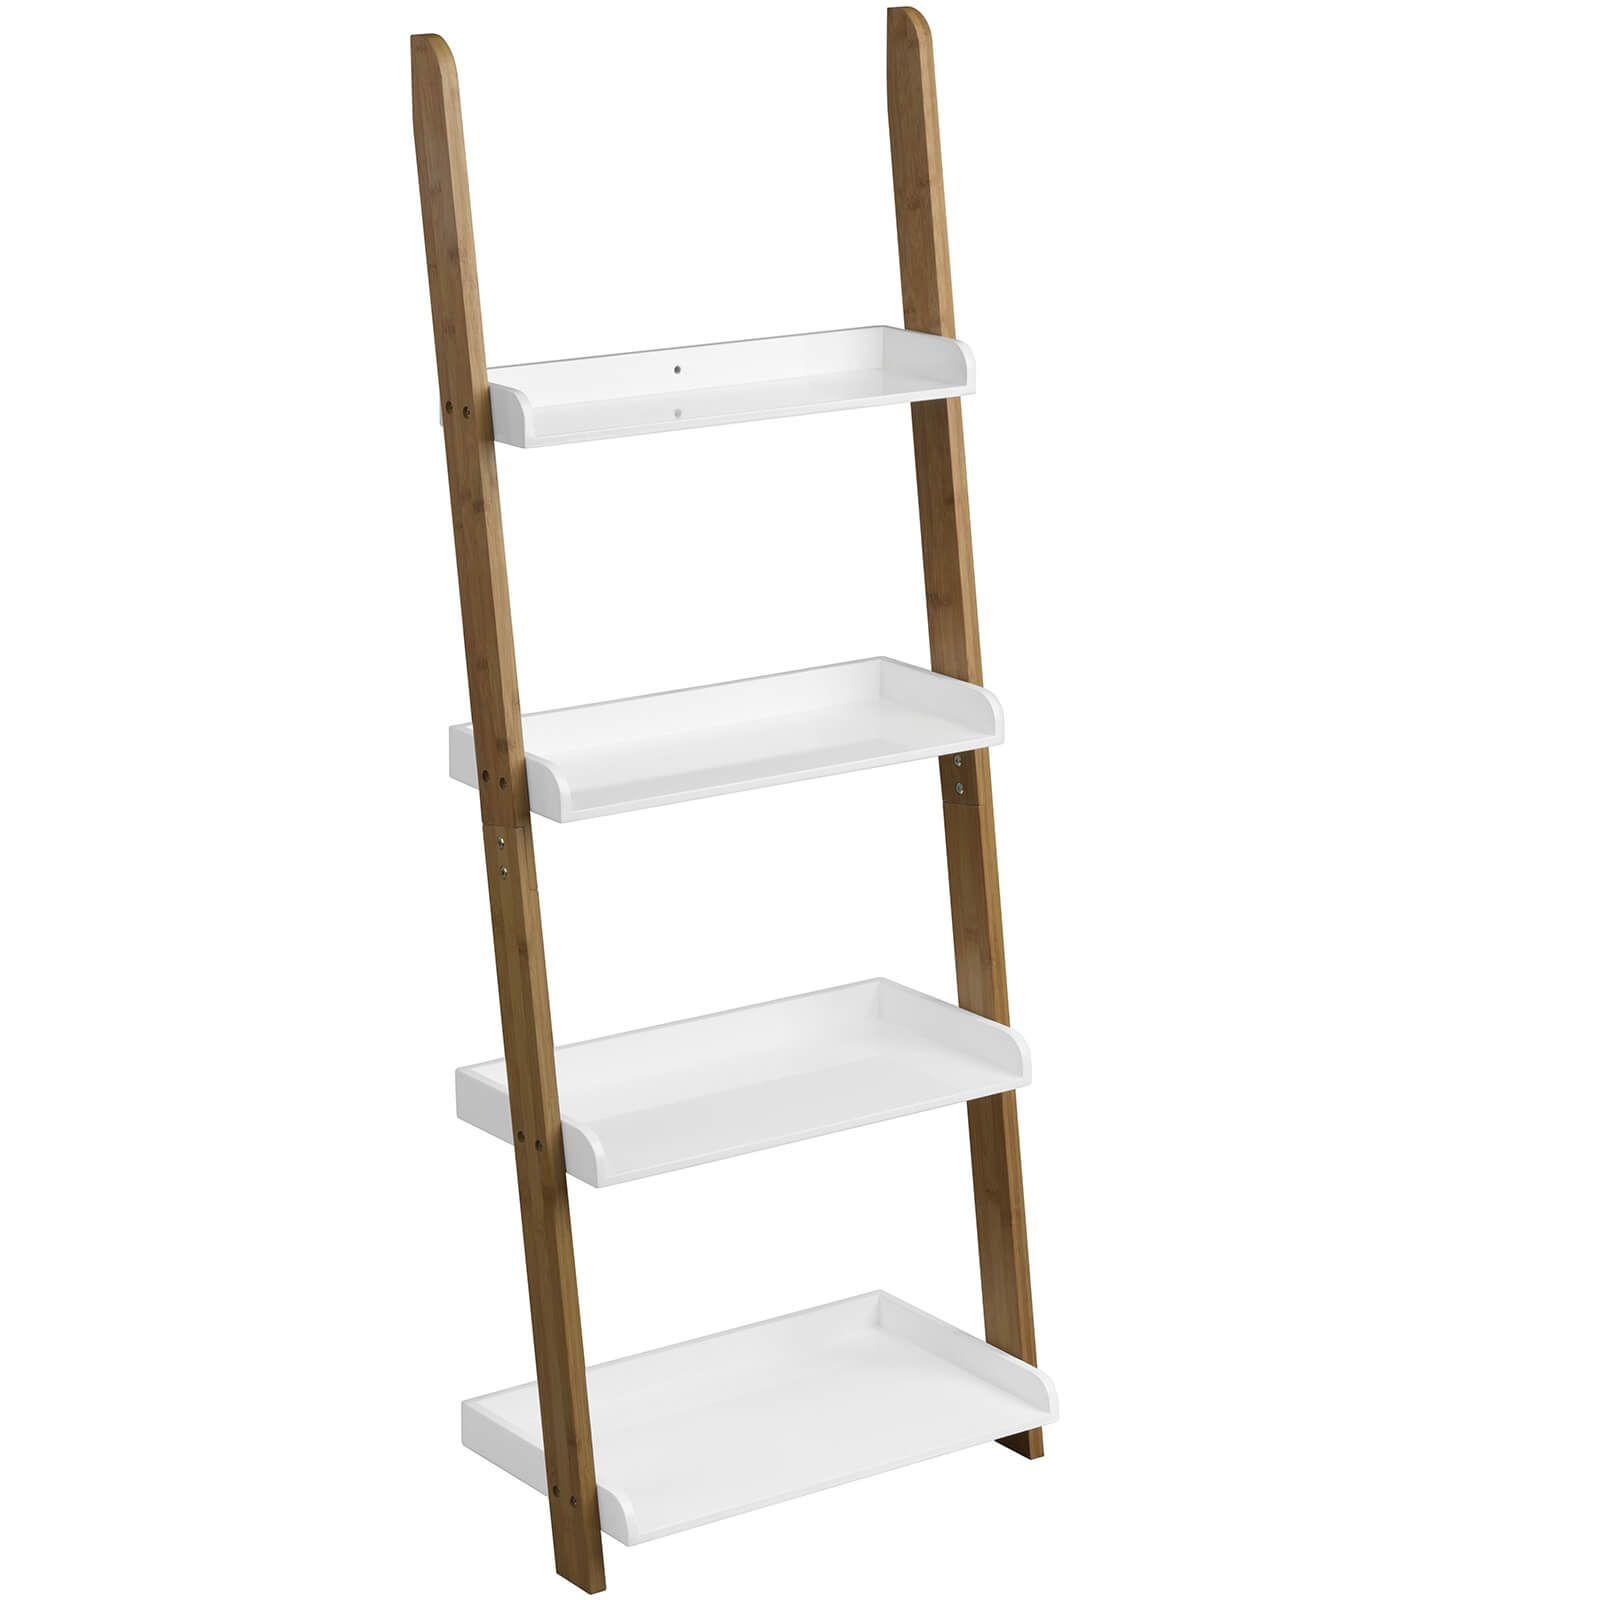 Fifty five south nostra bamboo shelf ladder unit white high gloss